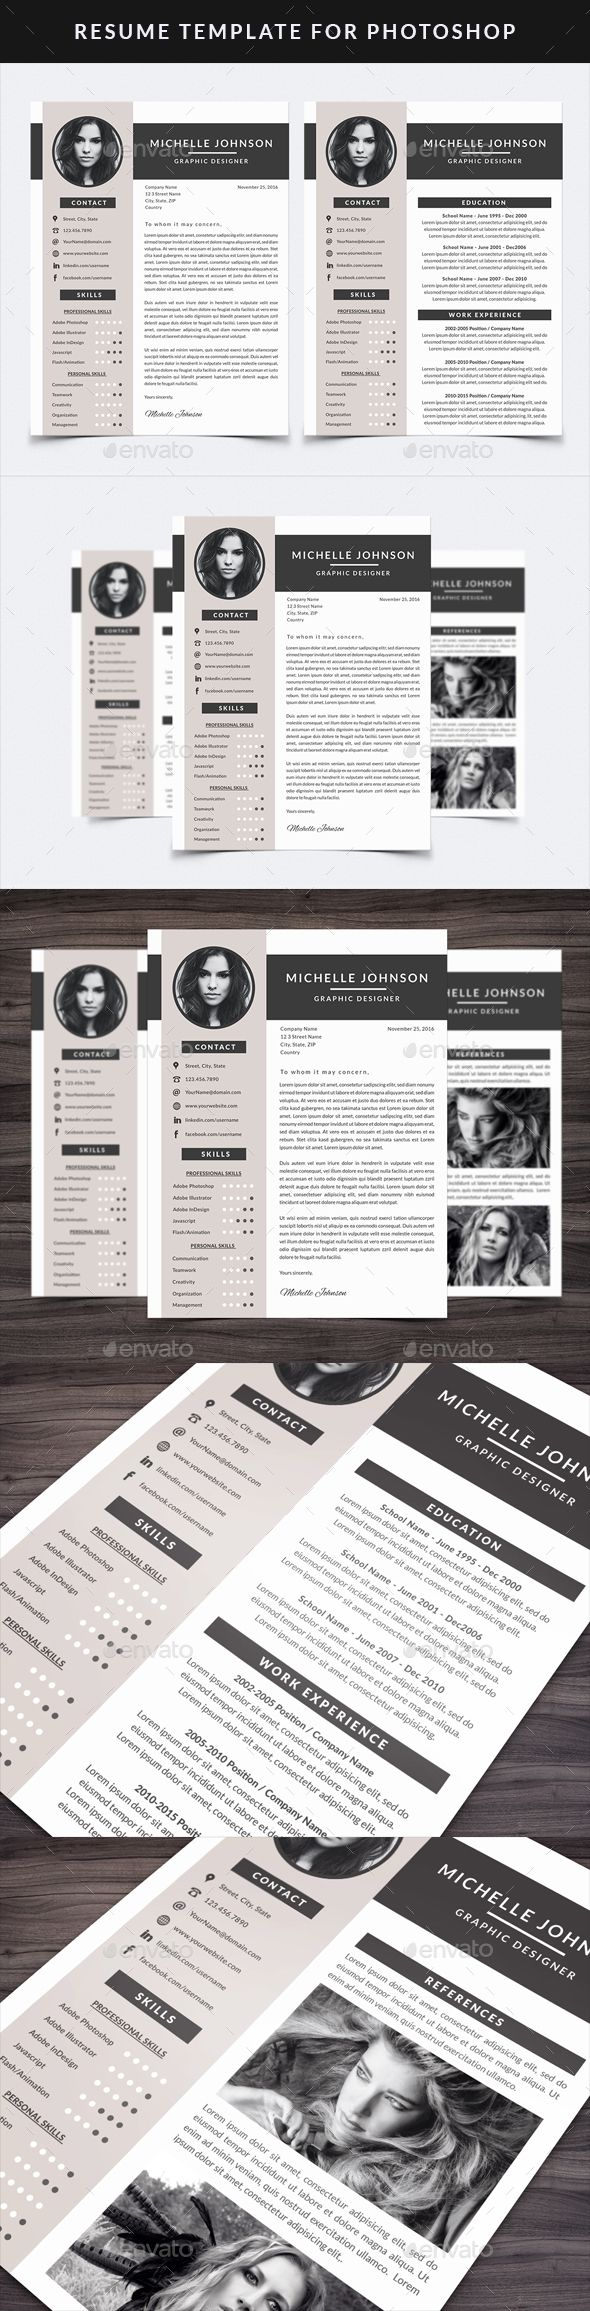 resume template for photoshop photoshop adobe photoshop and adobe